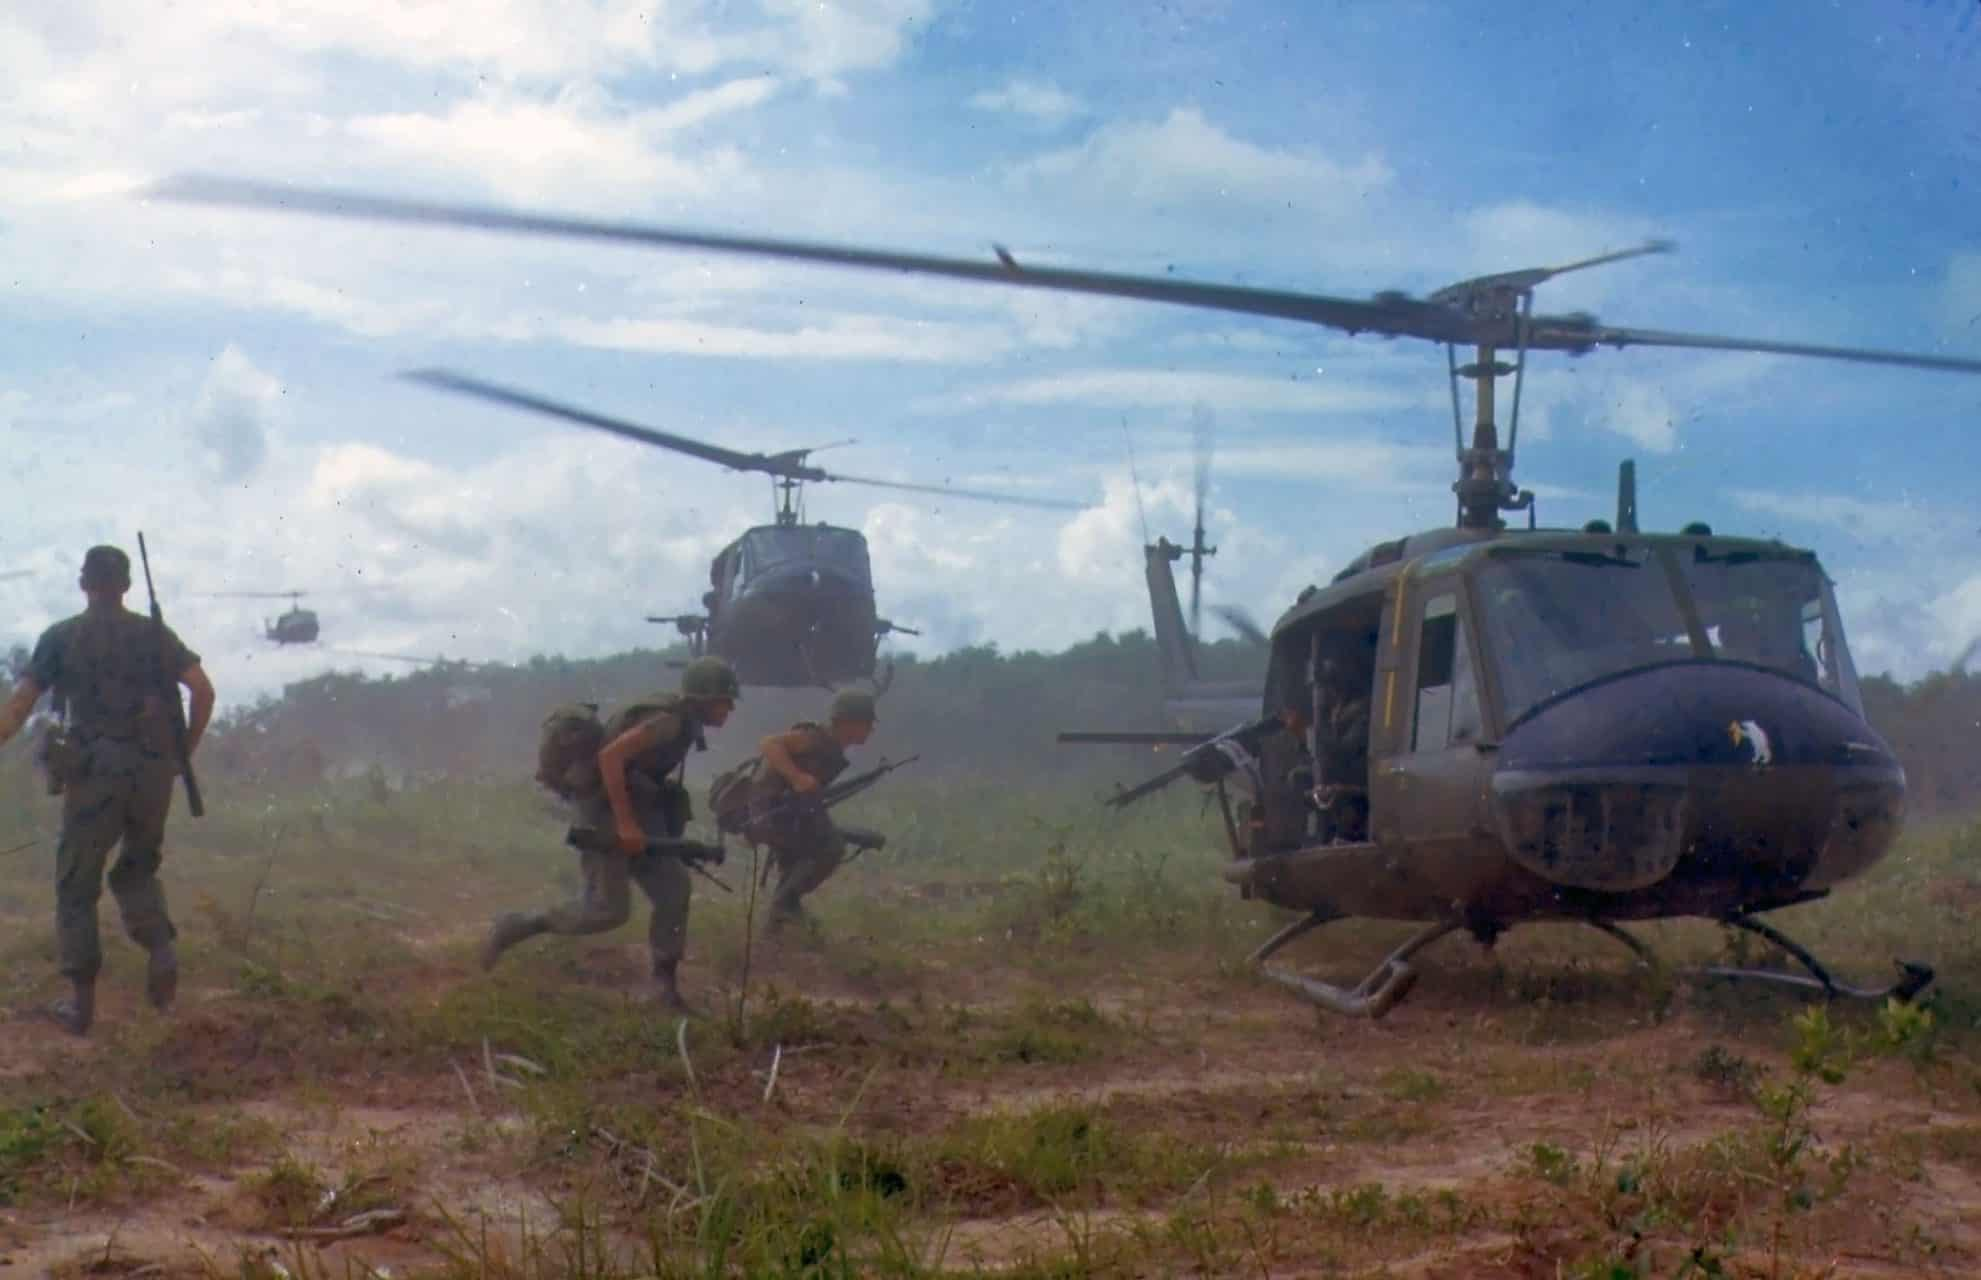 Types of Helicopters in the Vietnam War